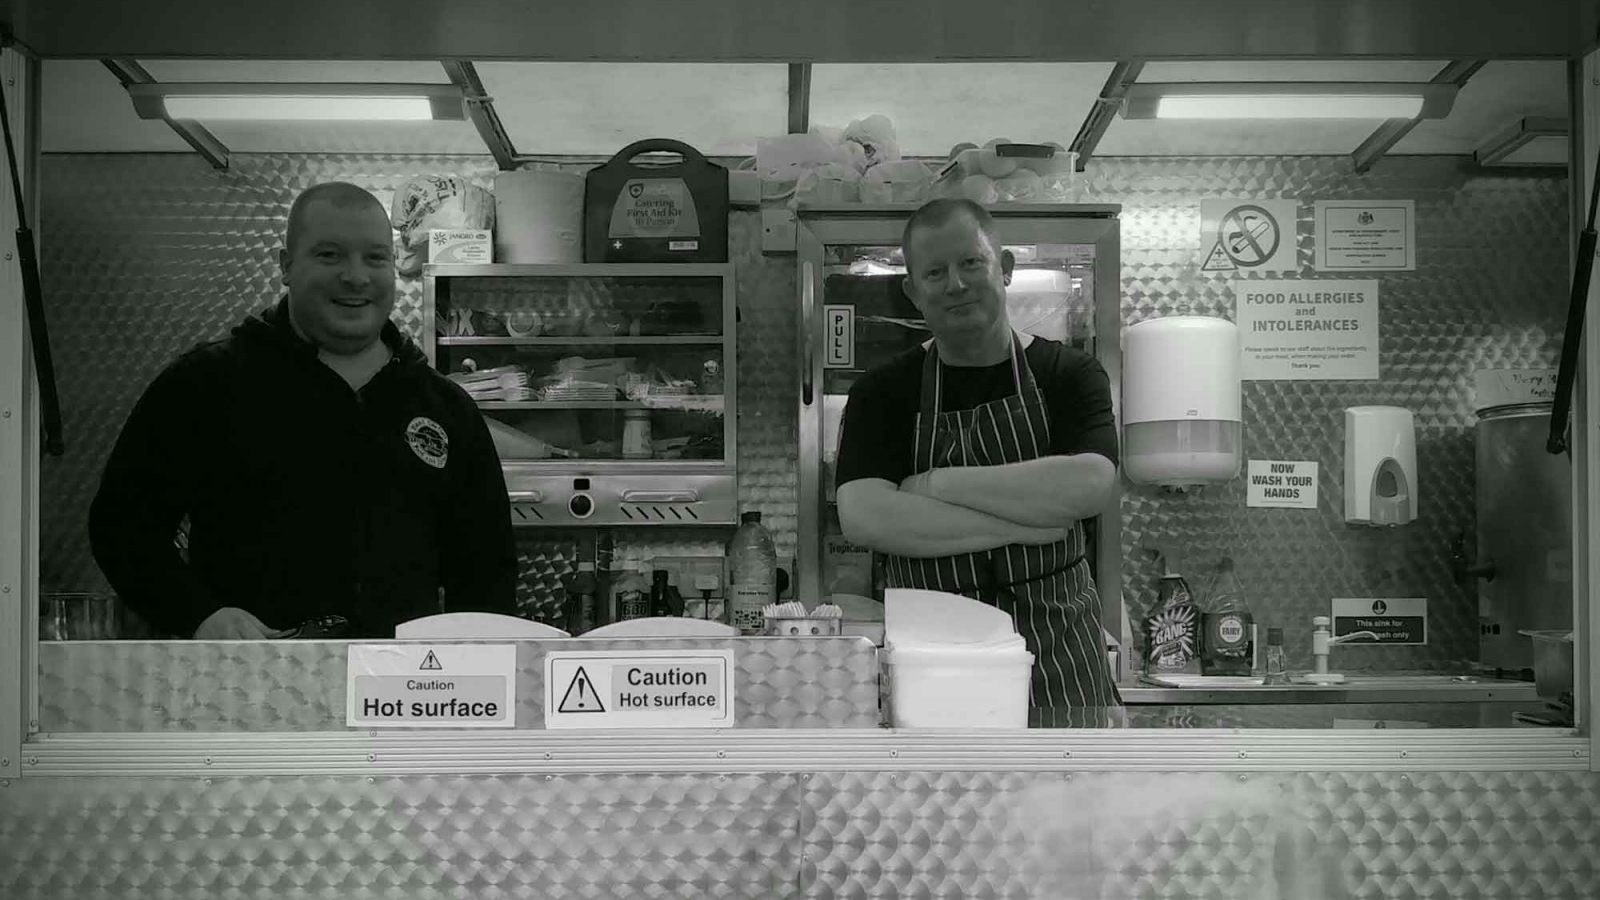 WTF owners and chefs Richard and Gareth in the street food trailer